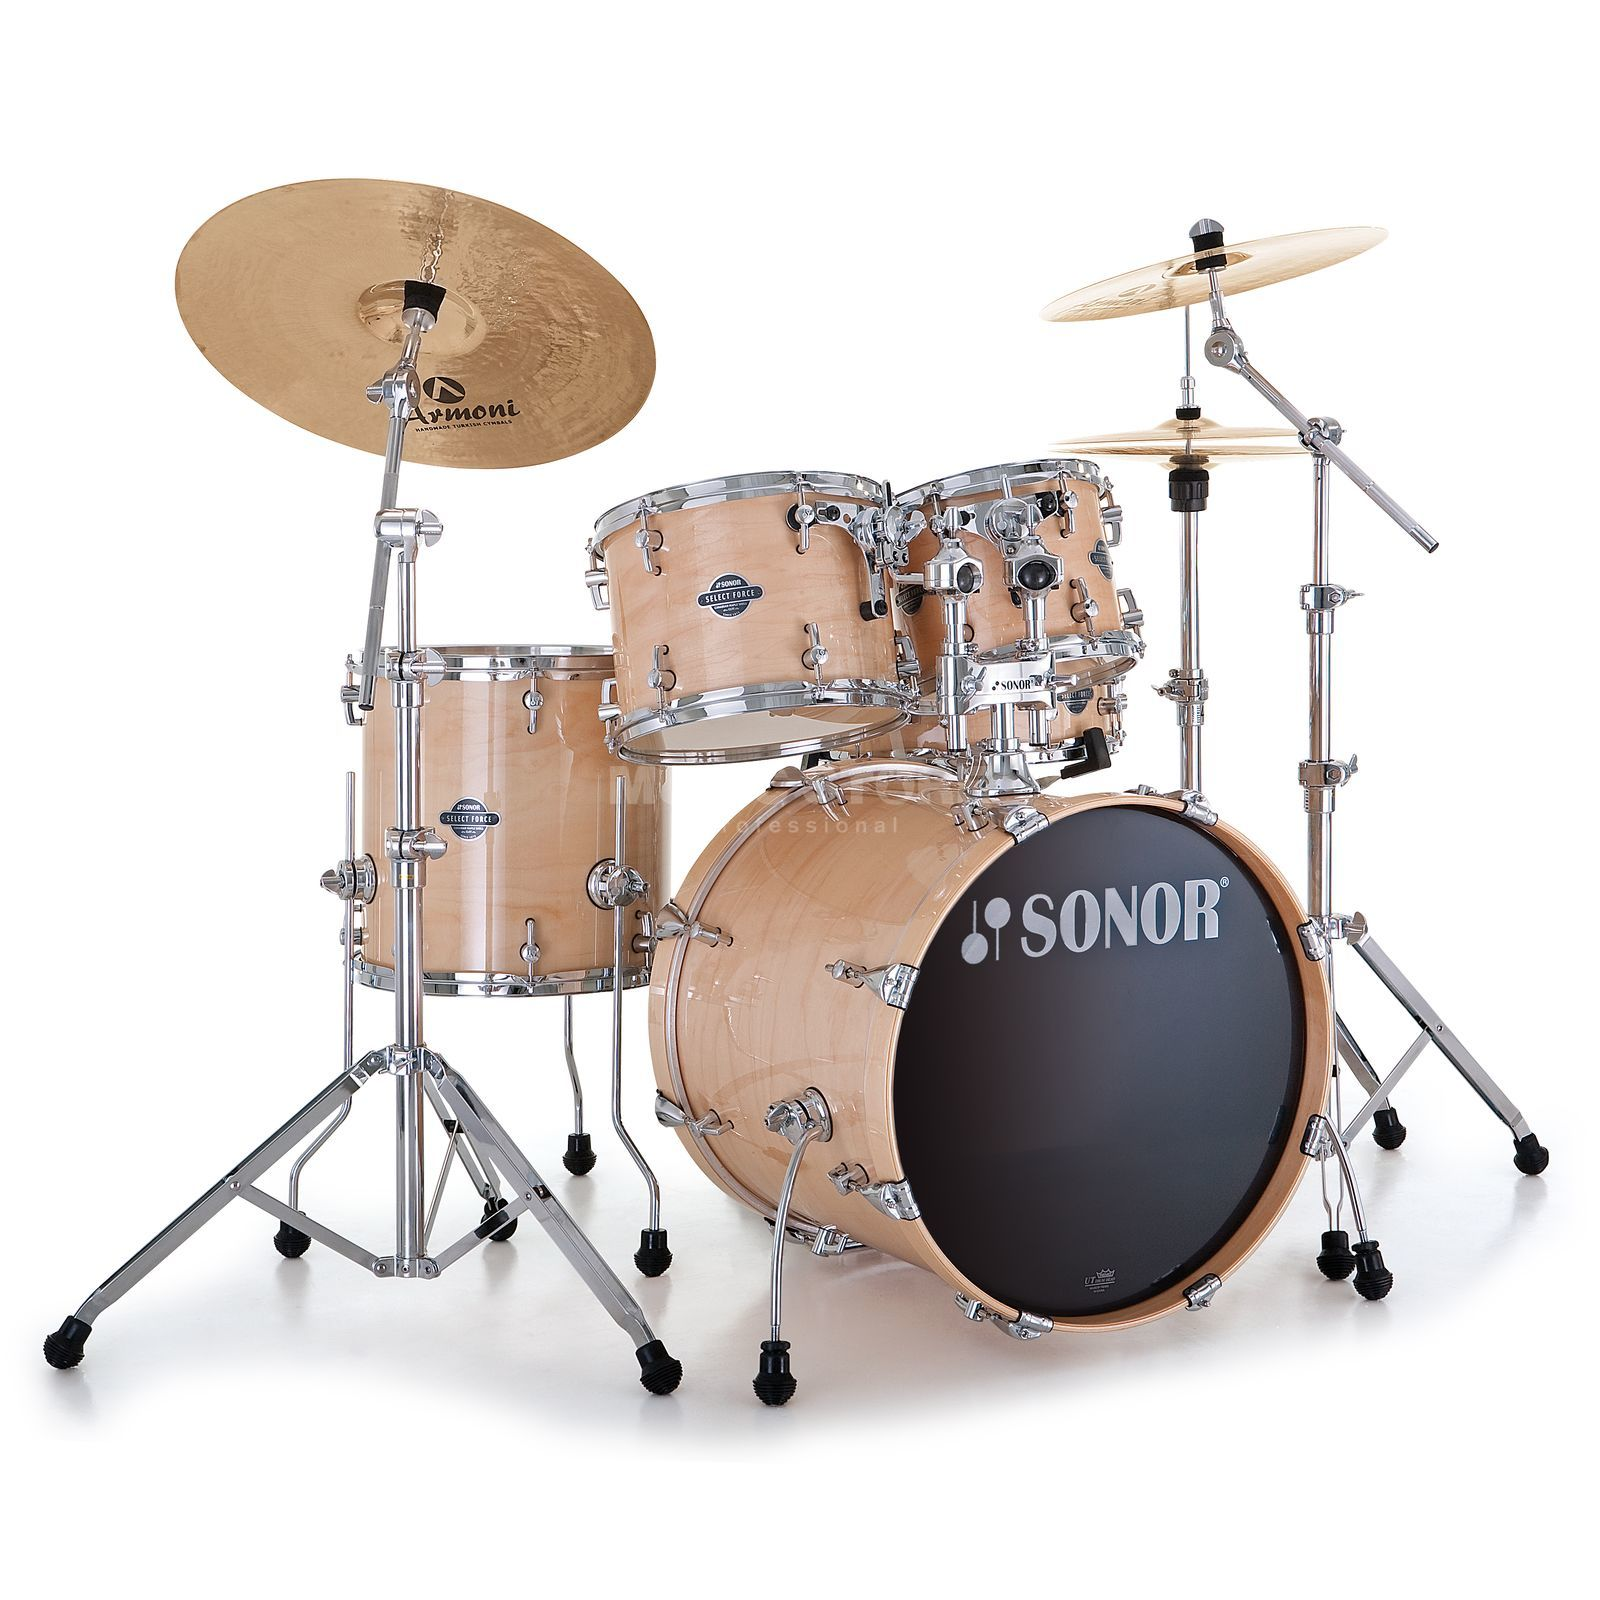 Sonor Select Force Studio, érable #44 Image du produit